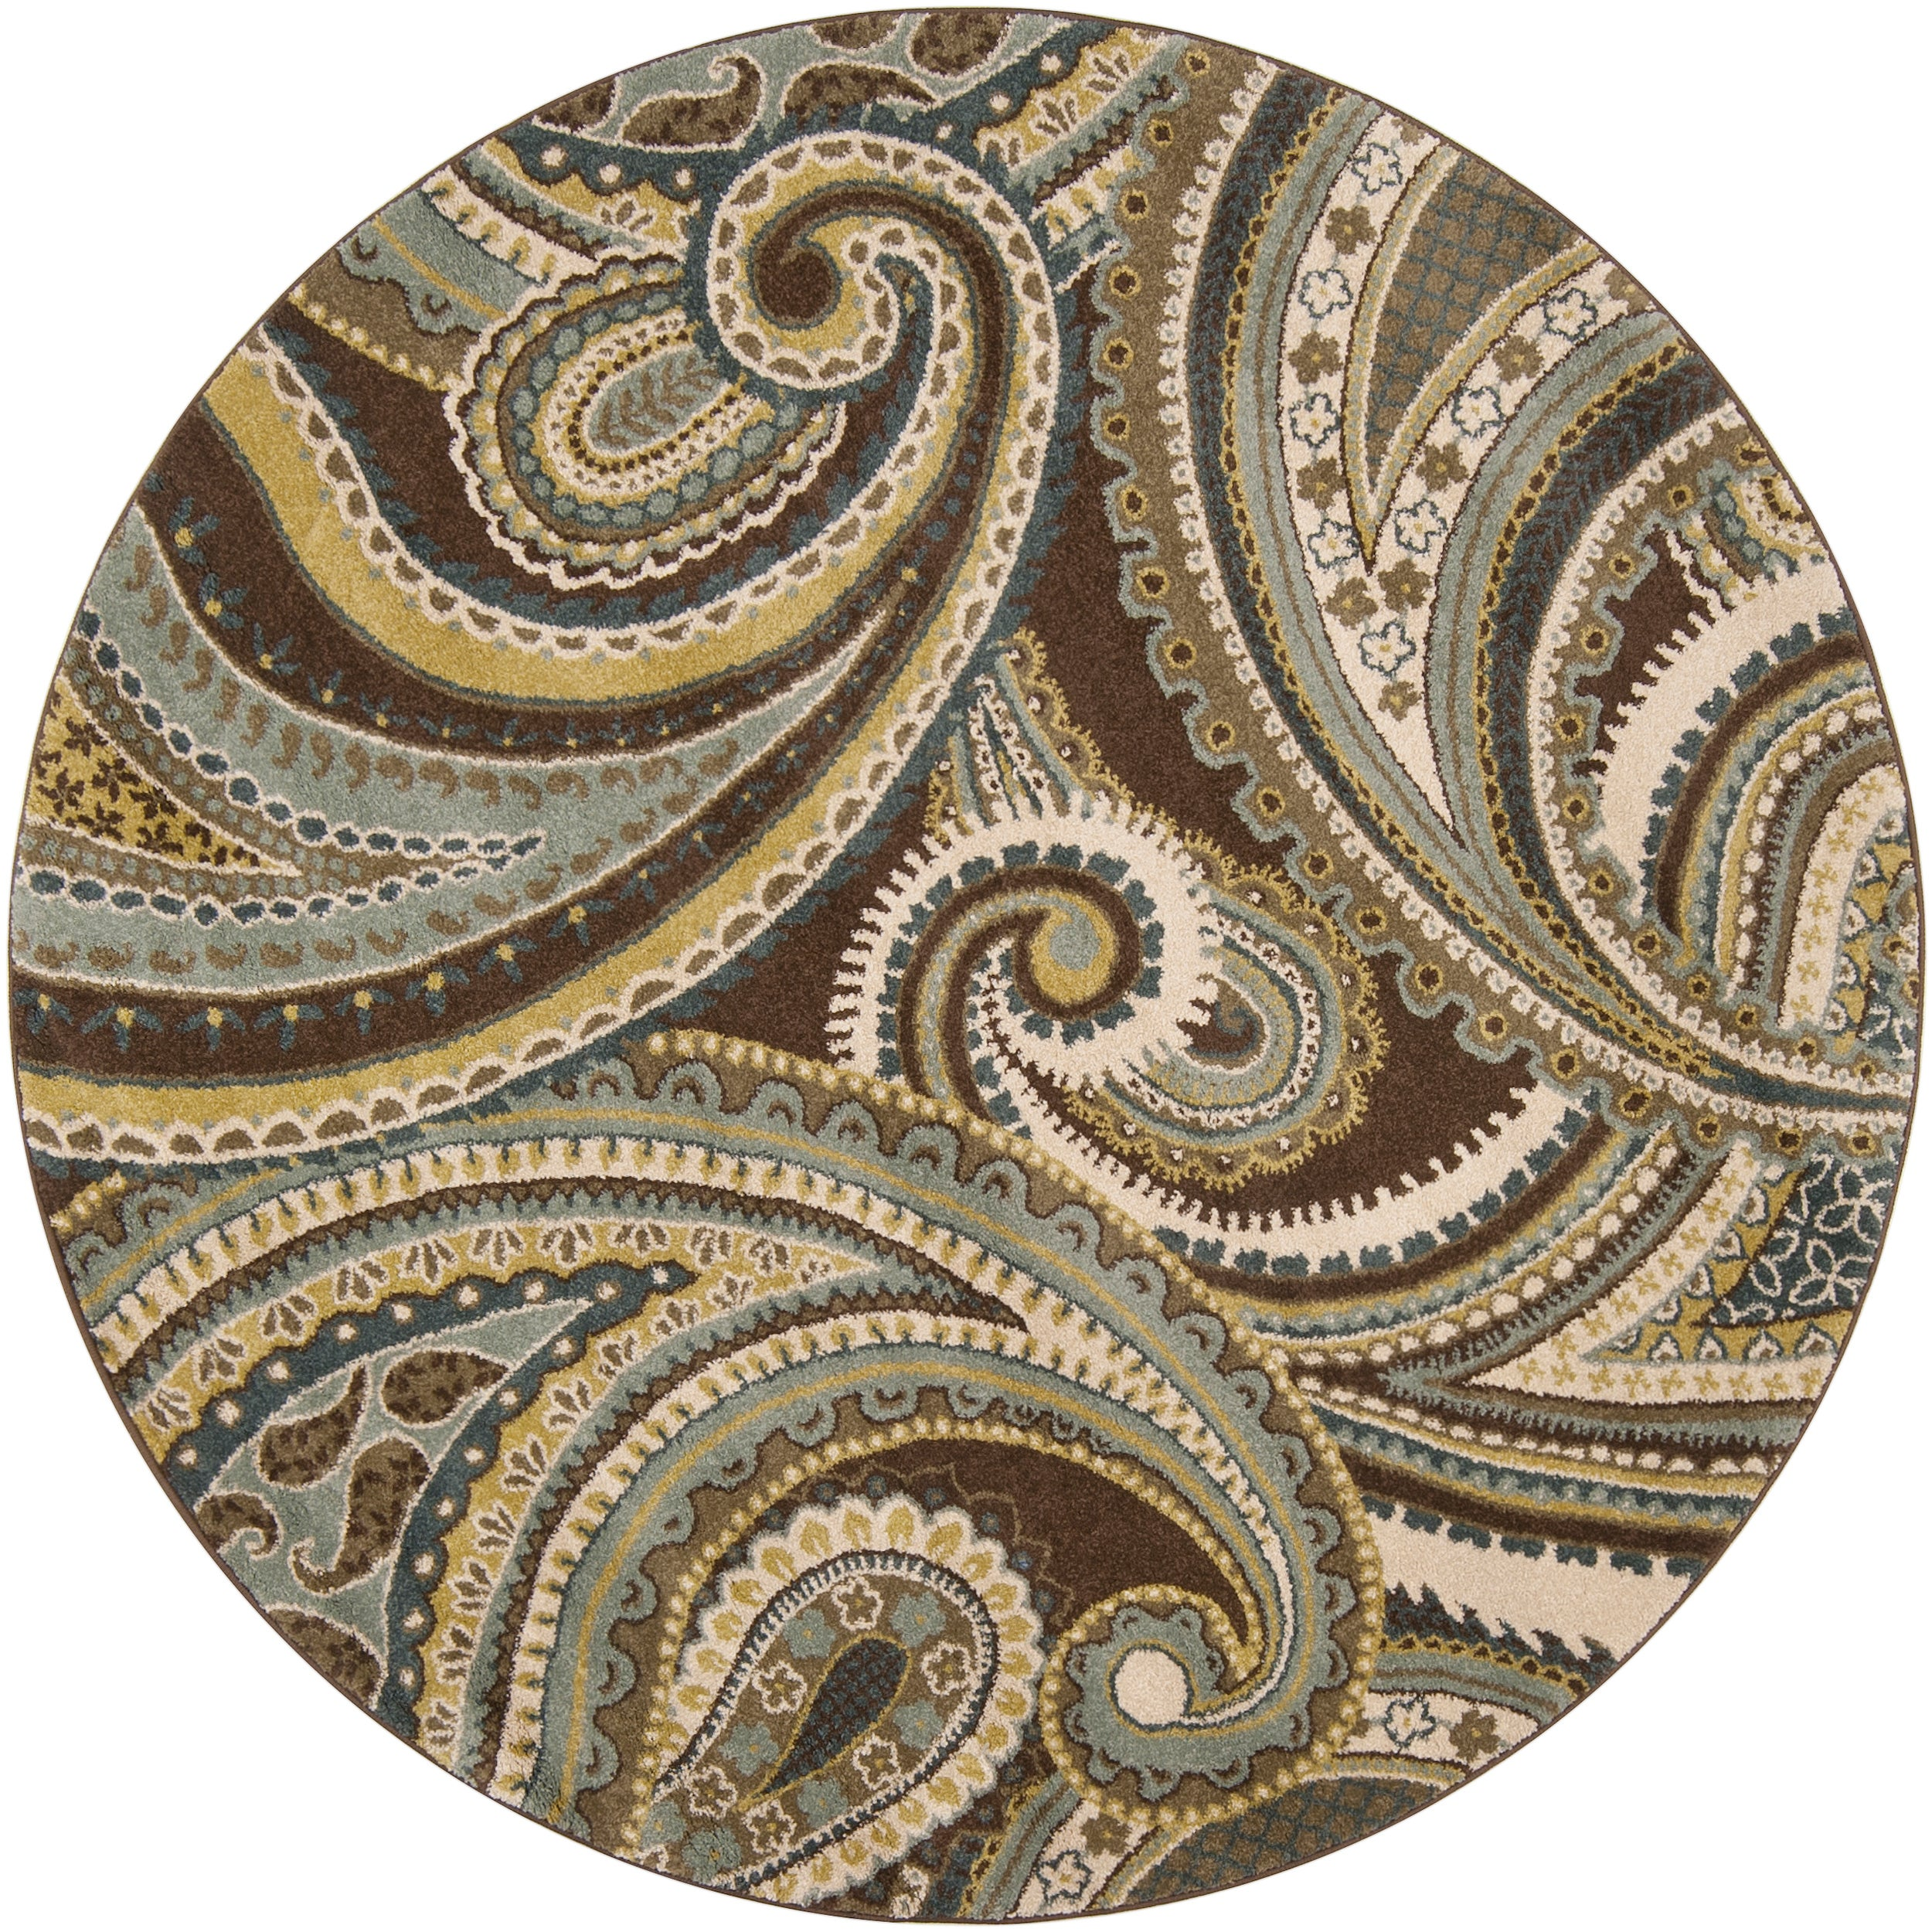 Meticulously Woven Contemporary Brown Green Paisley Floral